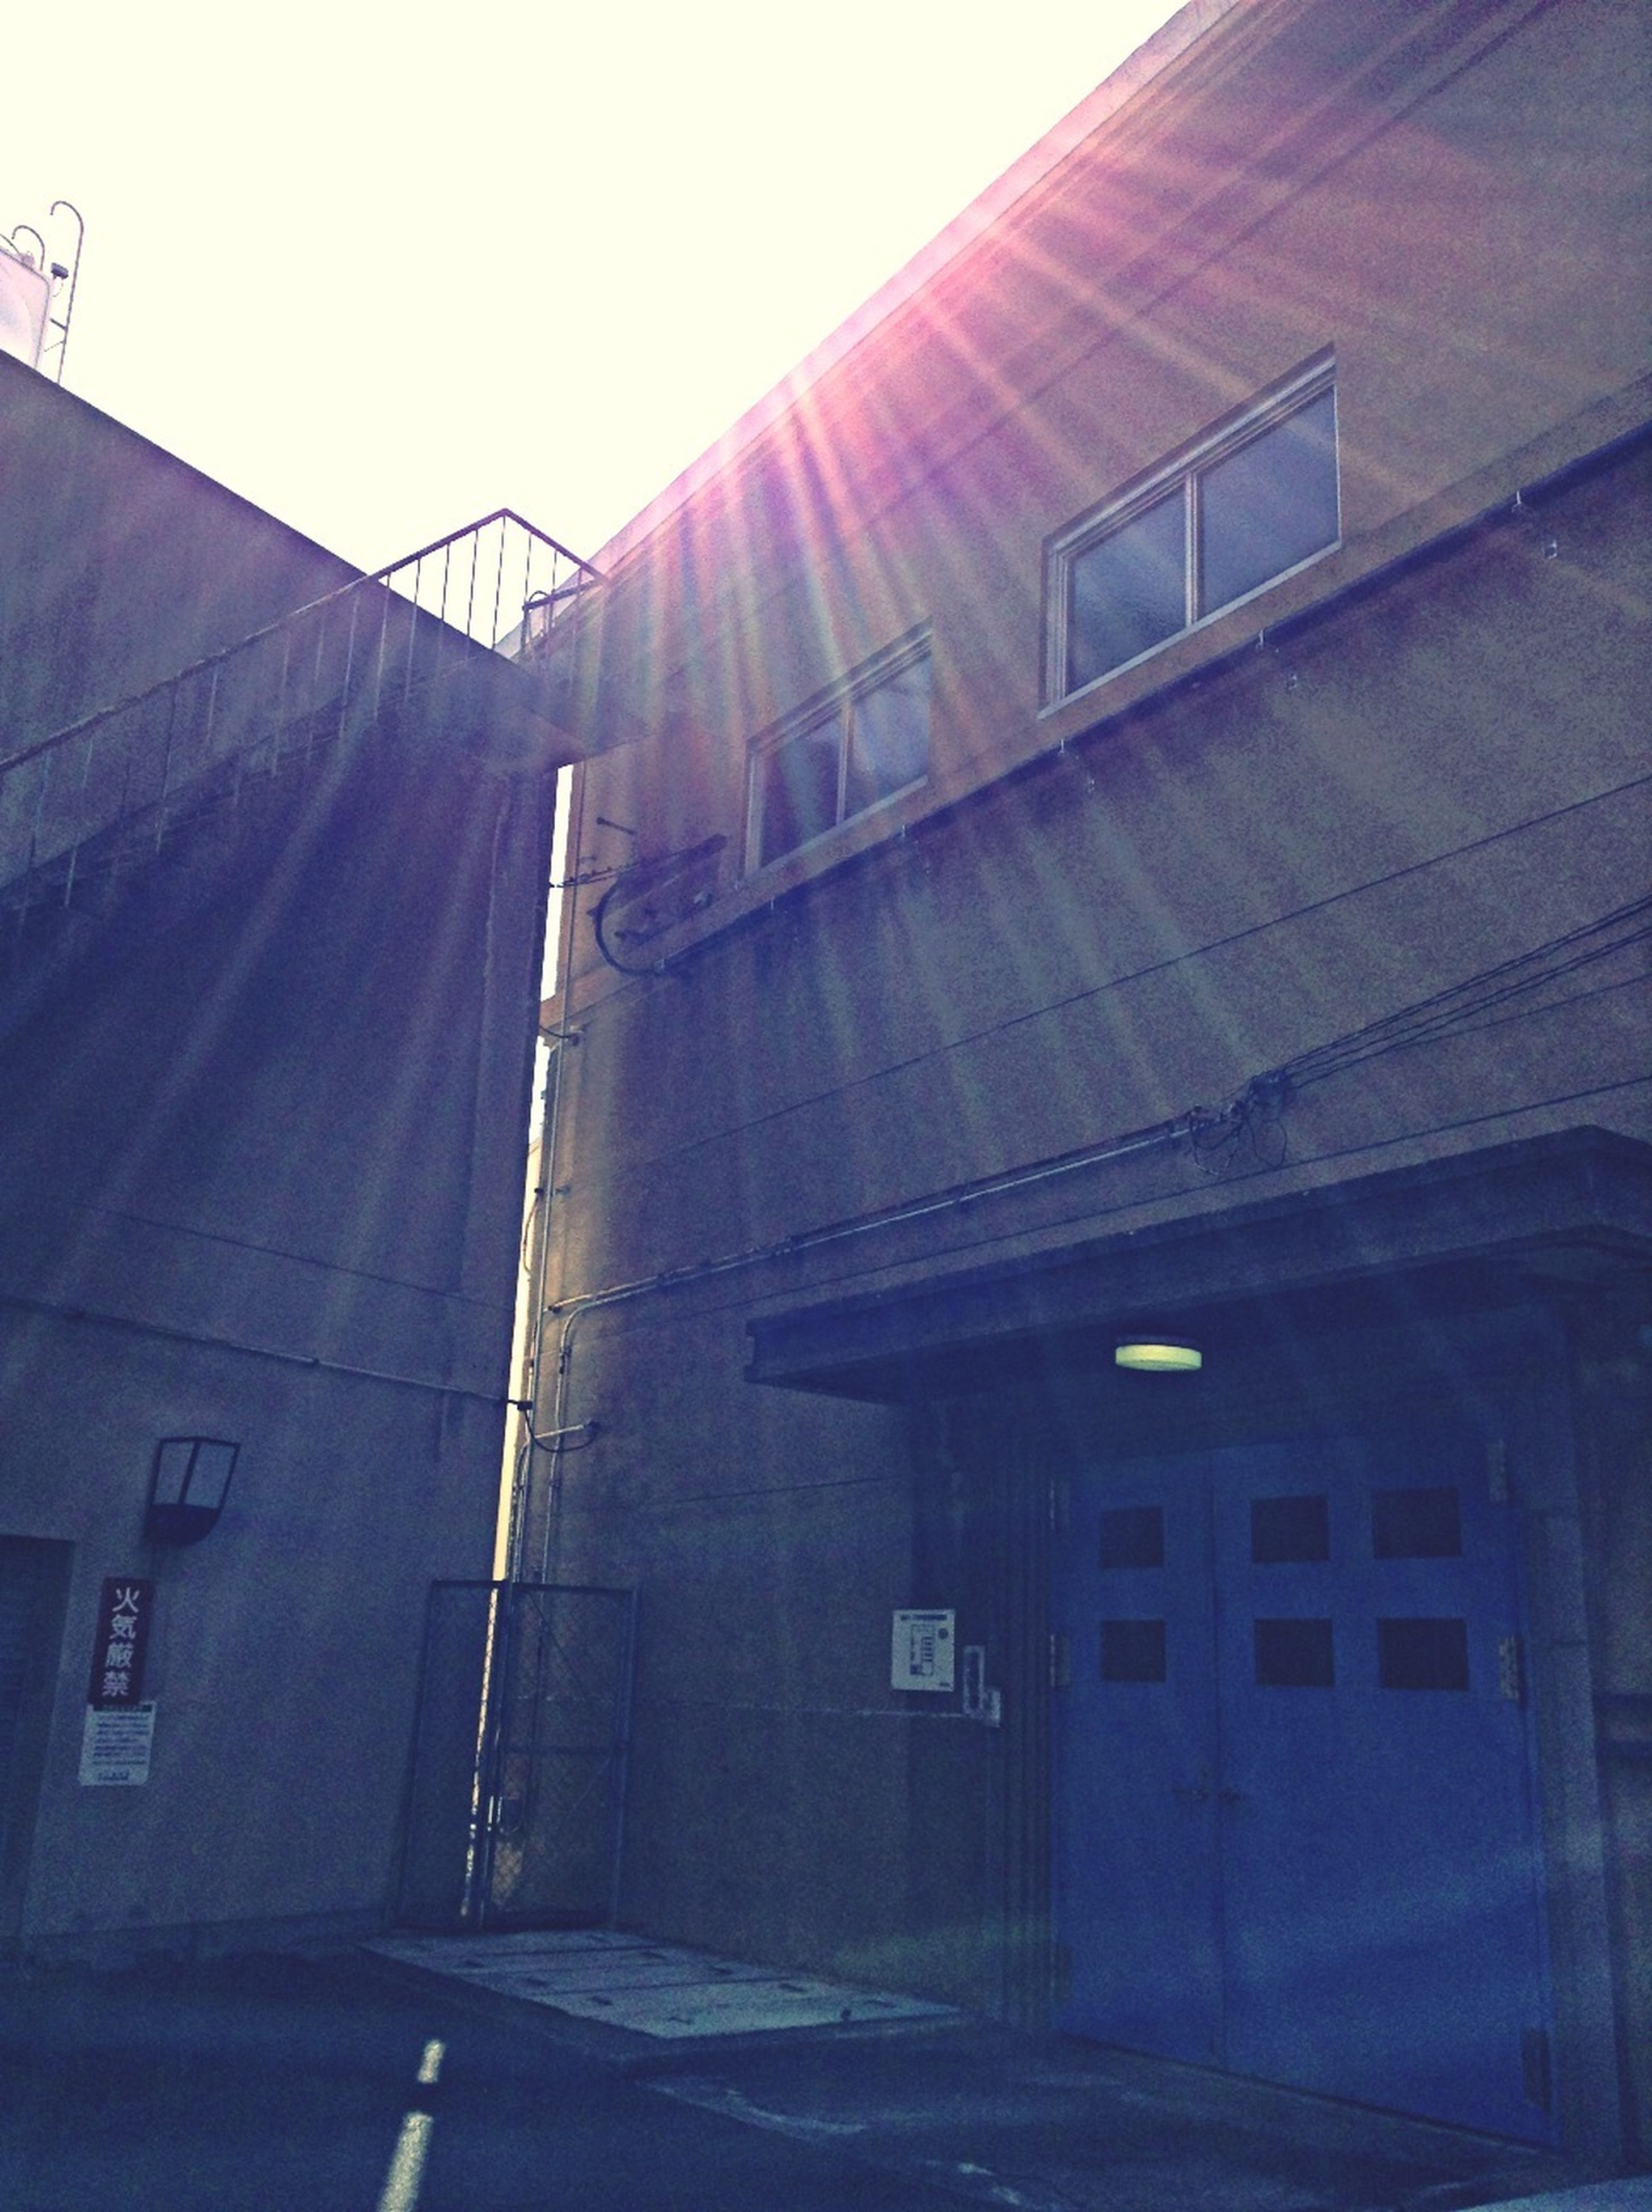 architecture, built structure, building exterior, sunlight, low angle view, transportation, the way forward, sun, clear sky, sunbeam, building, sky, lens flare, diminishing perspective, power line, no people, day, outdoors, street, sunny